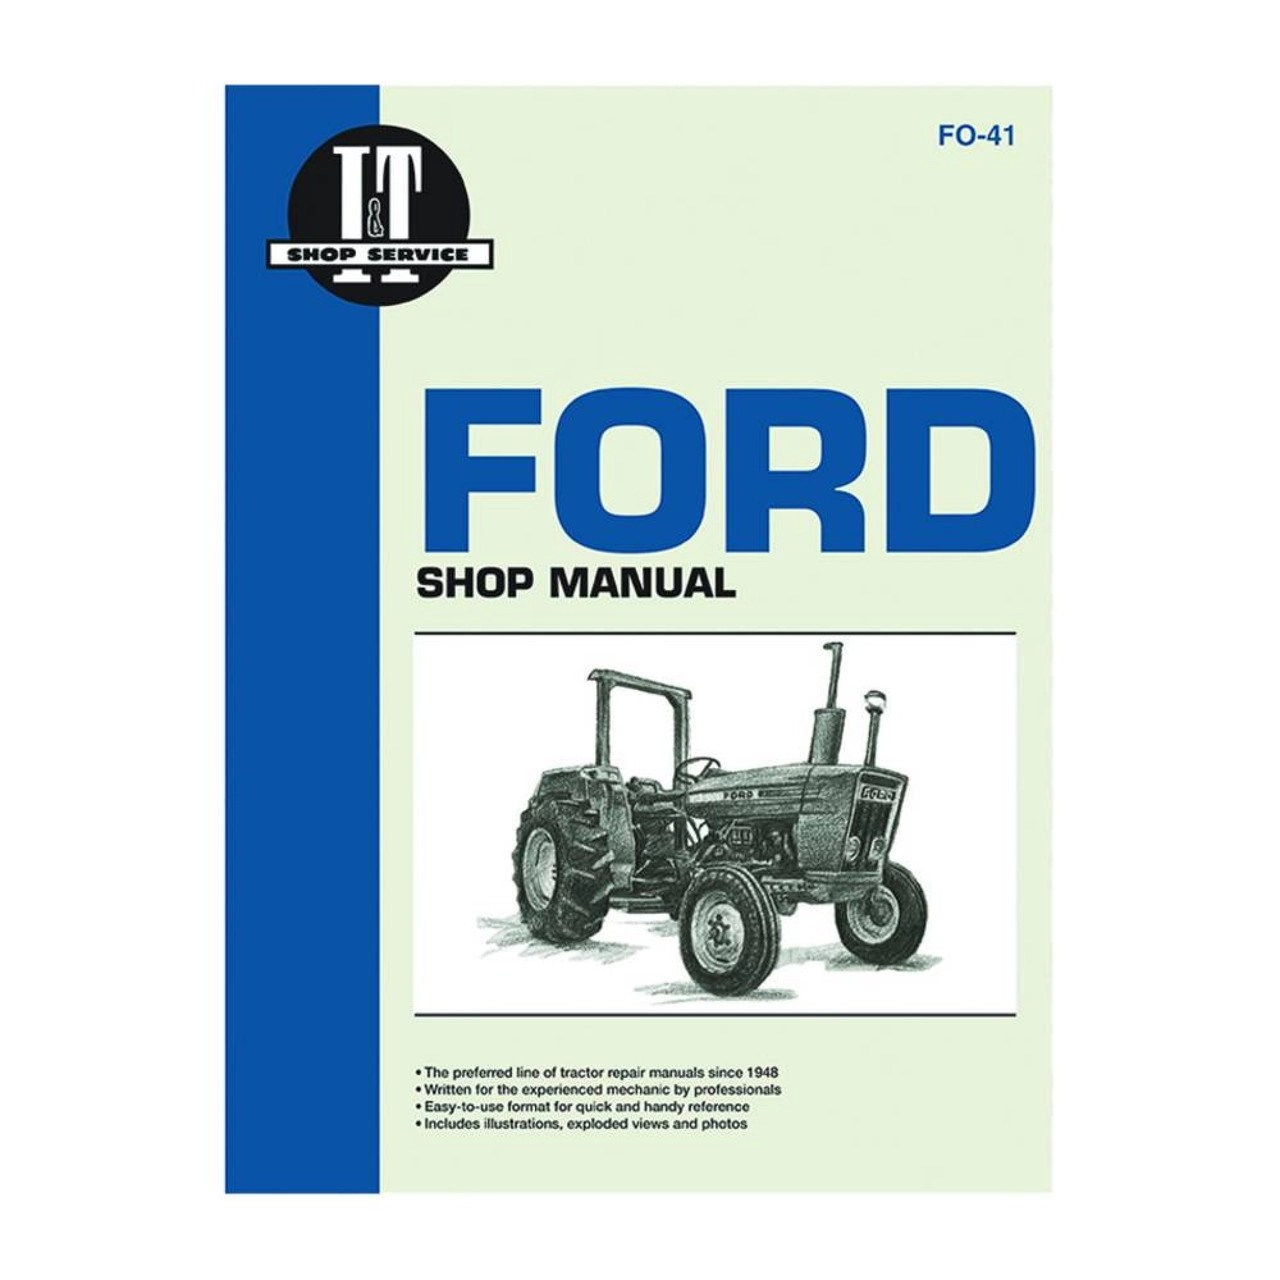 small resolution of service manual ford new holland tractor fo 41 2310 2600 2610 3600 2310 ford tractor wiring harness diagram